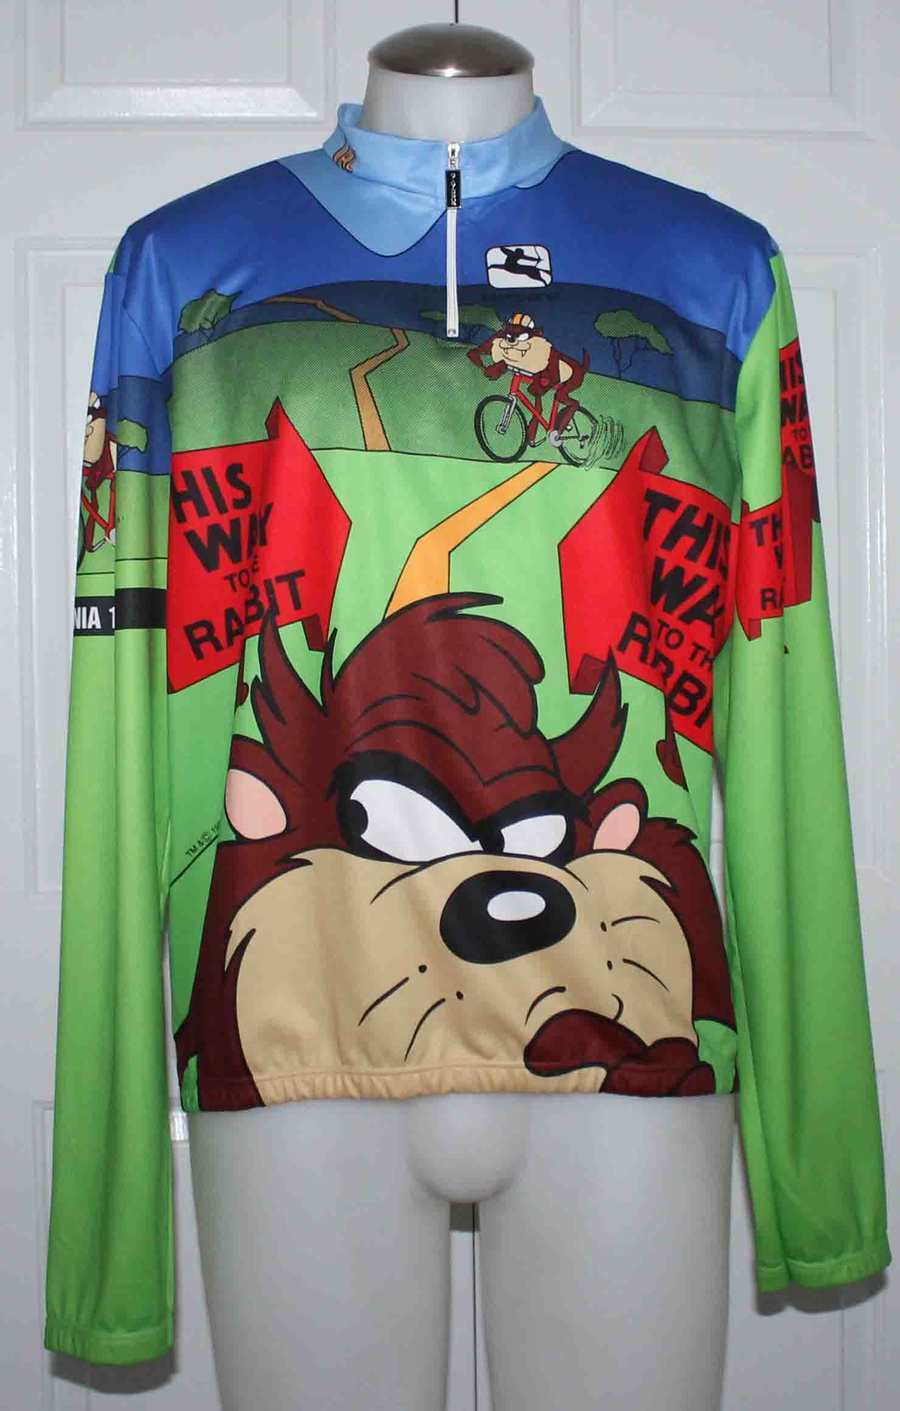 GIORDANA TAZ   TAZMANIAN DEVIL   CYCLING   RACING BIKE JERSEY 58